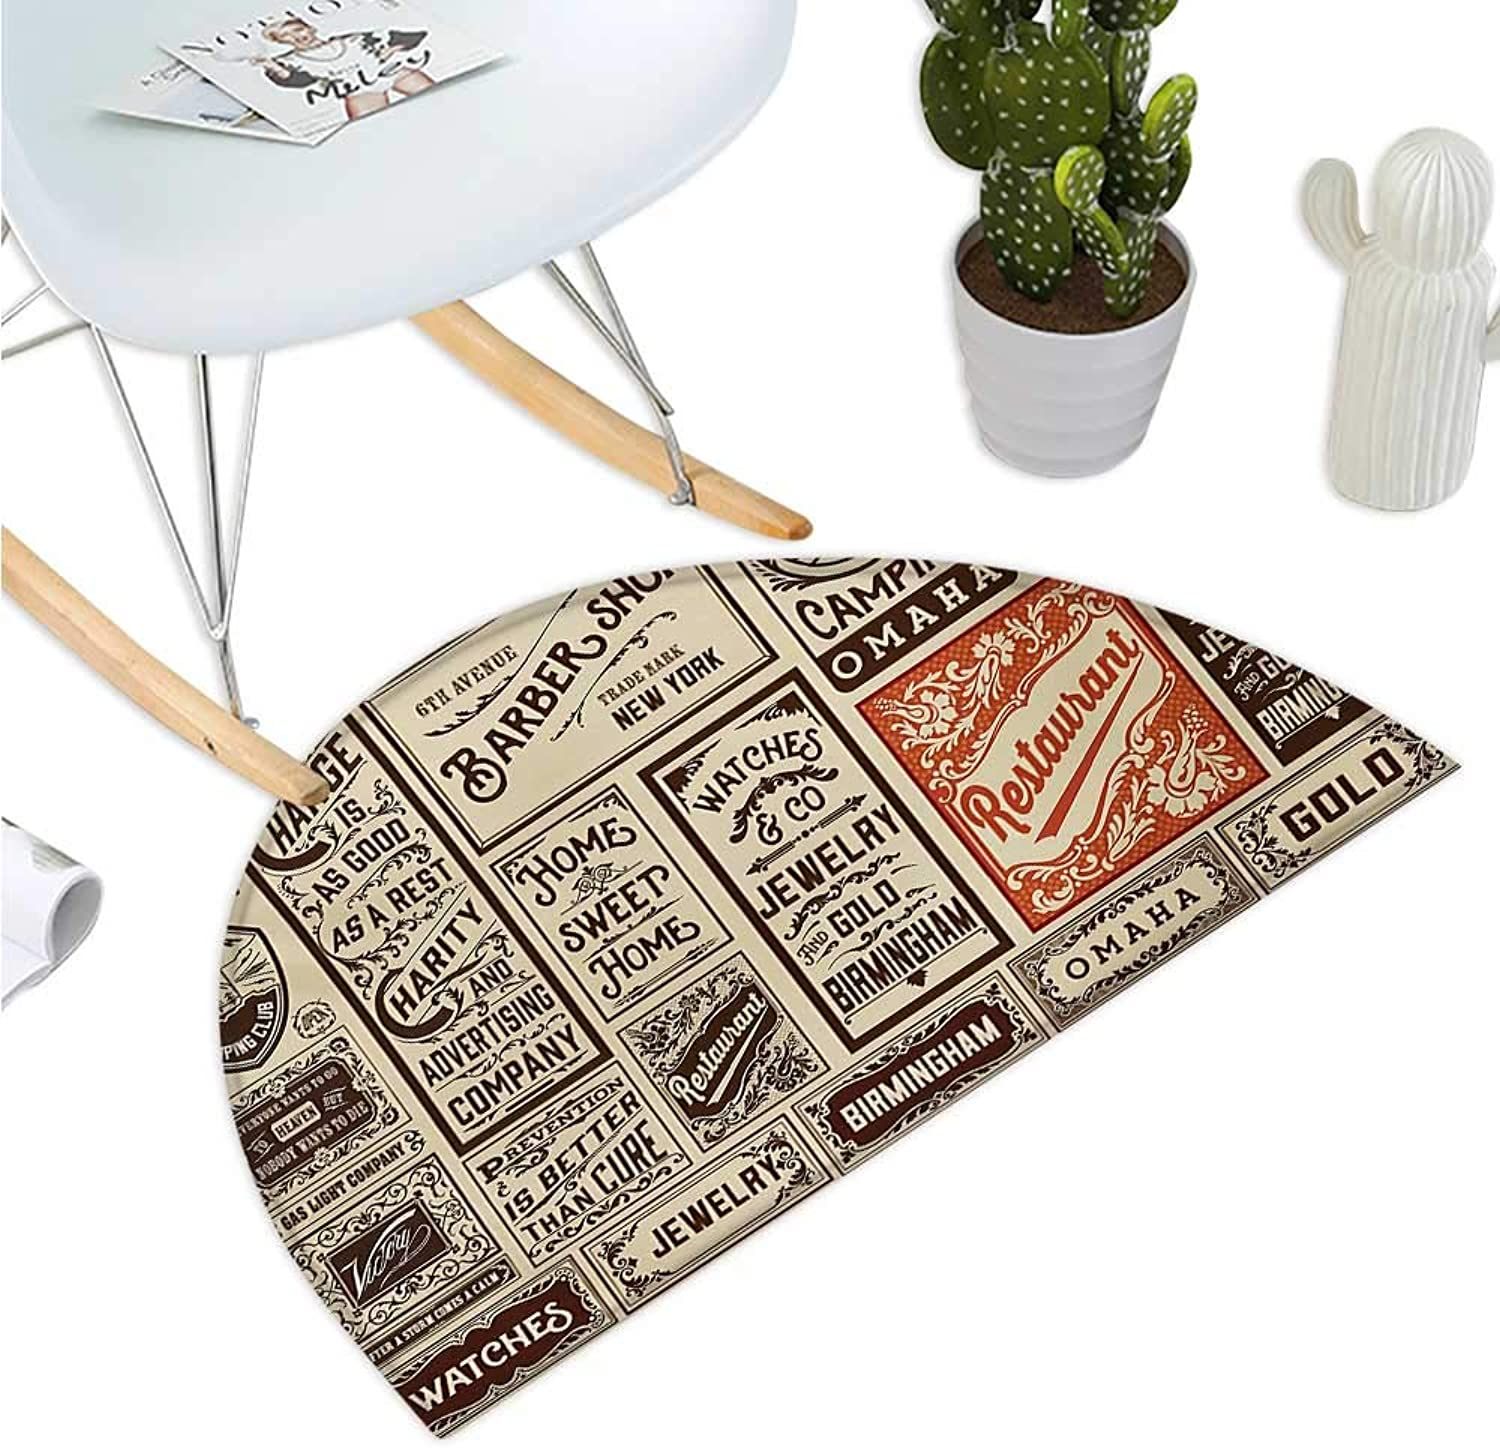 Antique Semicircular Cushion Mega Pack Old Adgreenisement Designs Labels Collections Newspaper Nostalgia Bathroom Mat H 43.3  xD 64.9  Cream Brown orange